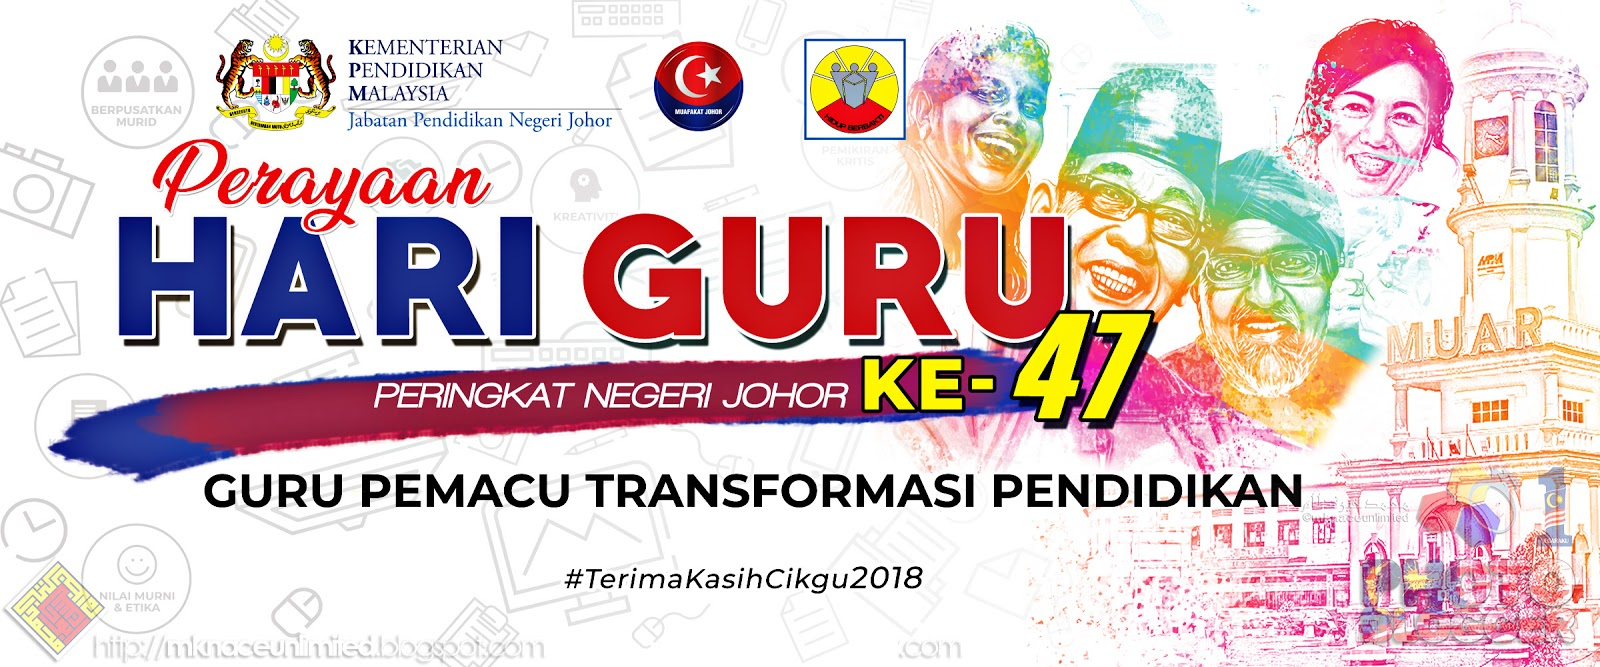 Daftar Harga Tcash Vaganza 31 Turtle Brand 4 Port Usb Car Charger Kingston Hyperx Fury Hx318c10frk2 16 16gb Ddr3 Pc15000 Red Heatspreader Perayaan Hari Guru Peringkat Negeri Johor Ke 47 Publisiti Team On